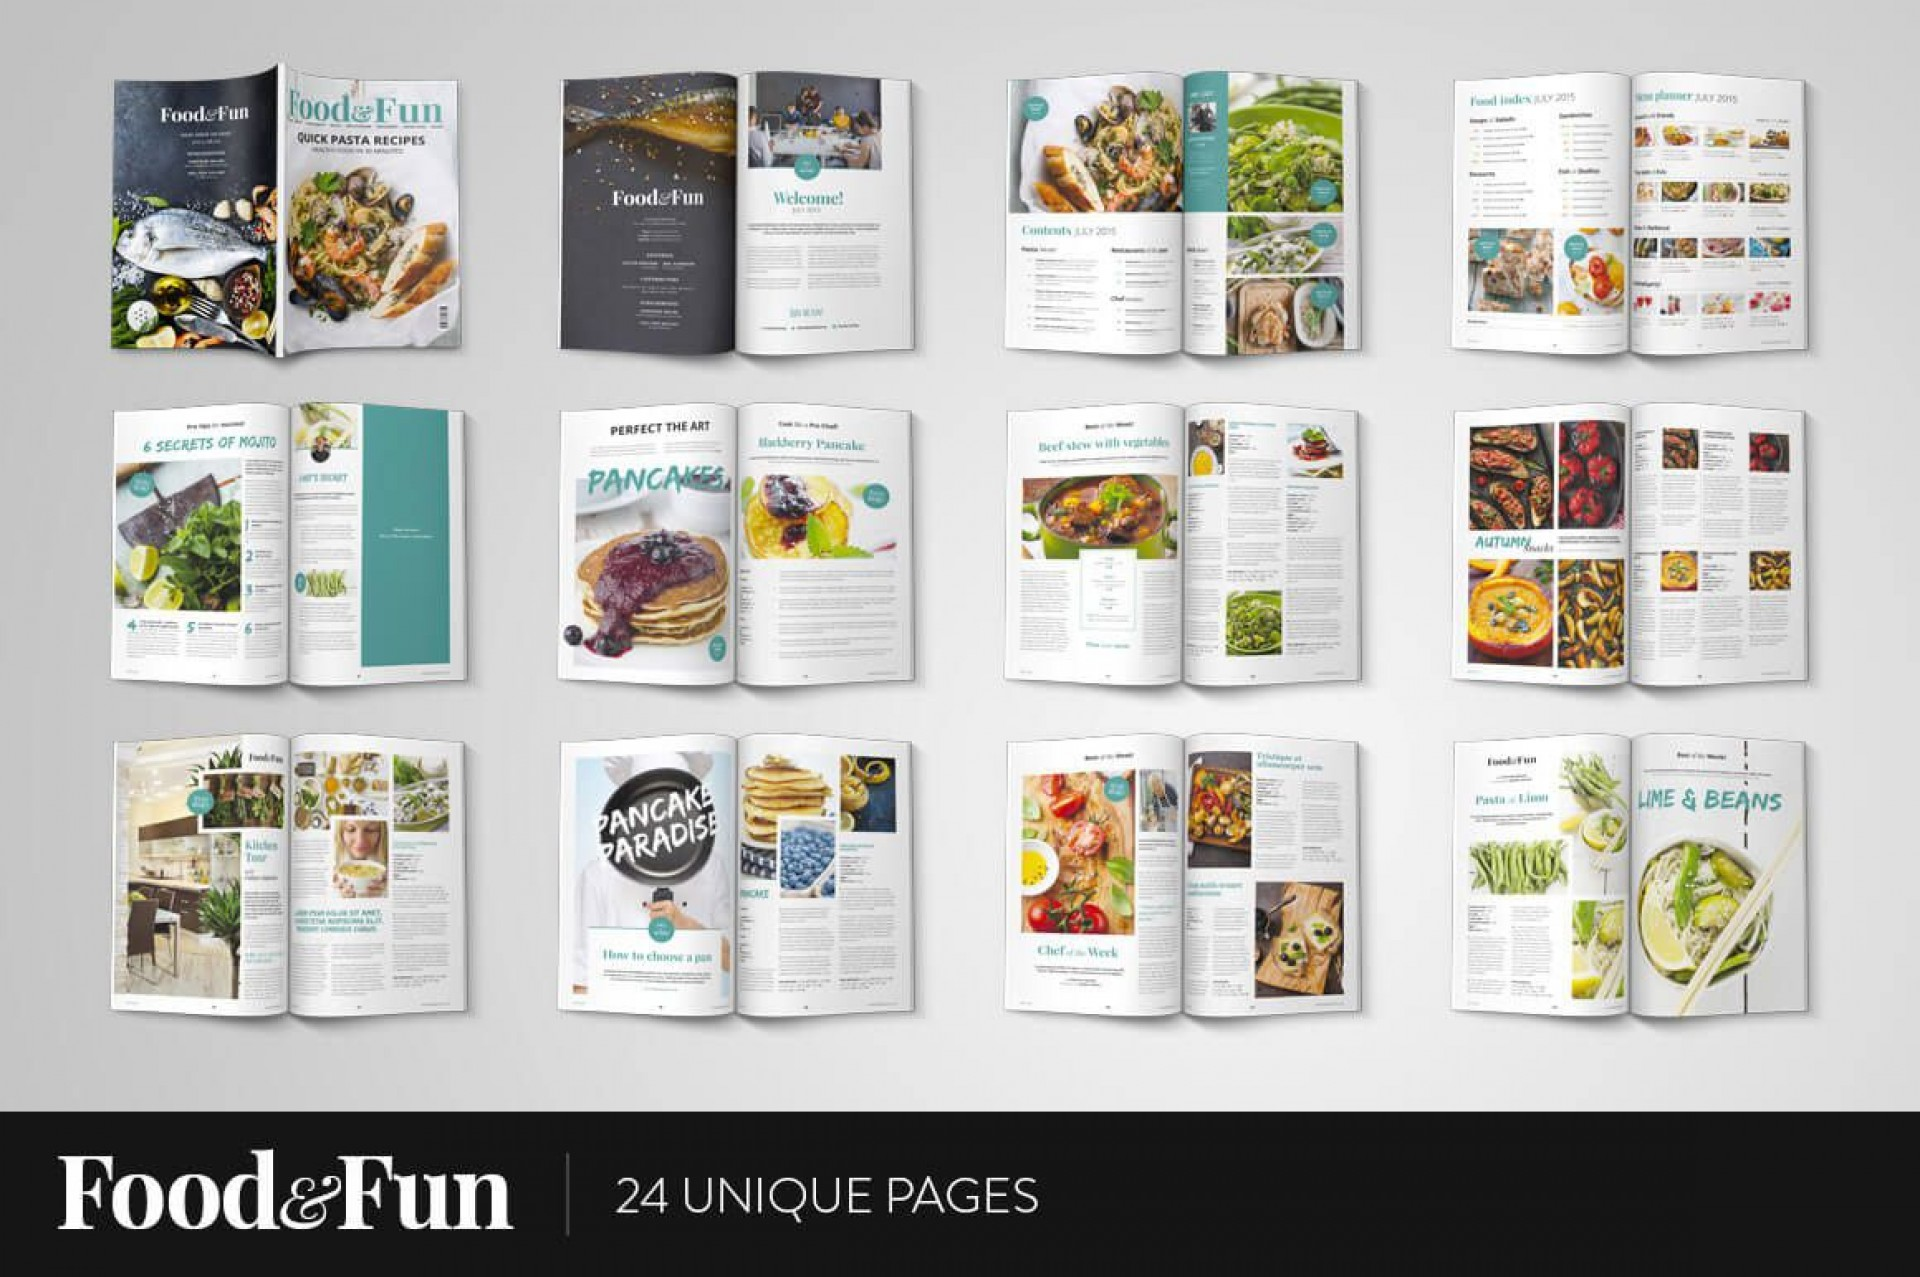 006 Awesome Photoshop Magazine Layout Template Free Download High Def 1920